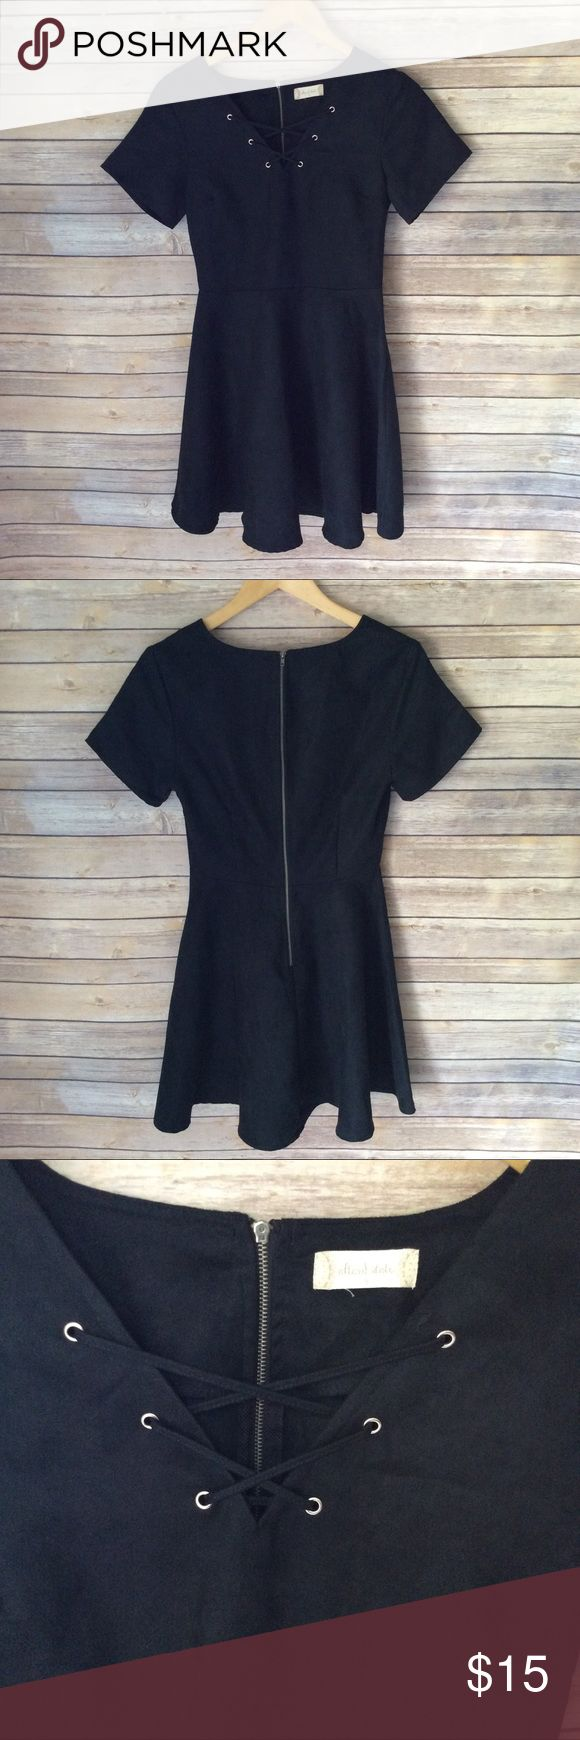 Altar'd State Black Corset Dress Size Small Altar'd State Black Corset Dress Size Small. Excellent Preowned Condition. Ships from smoke free and pet free home. Altar'd State Dresses